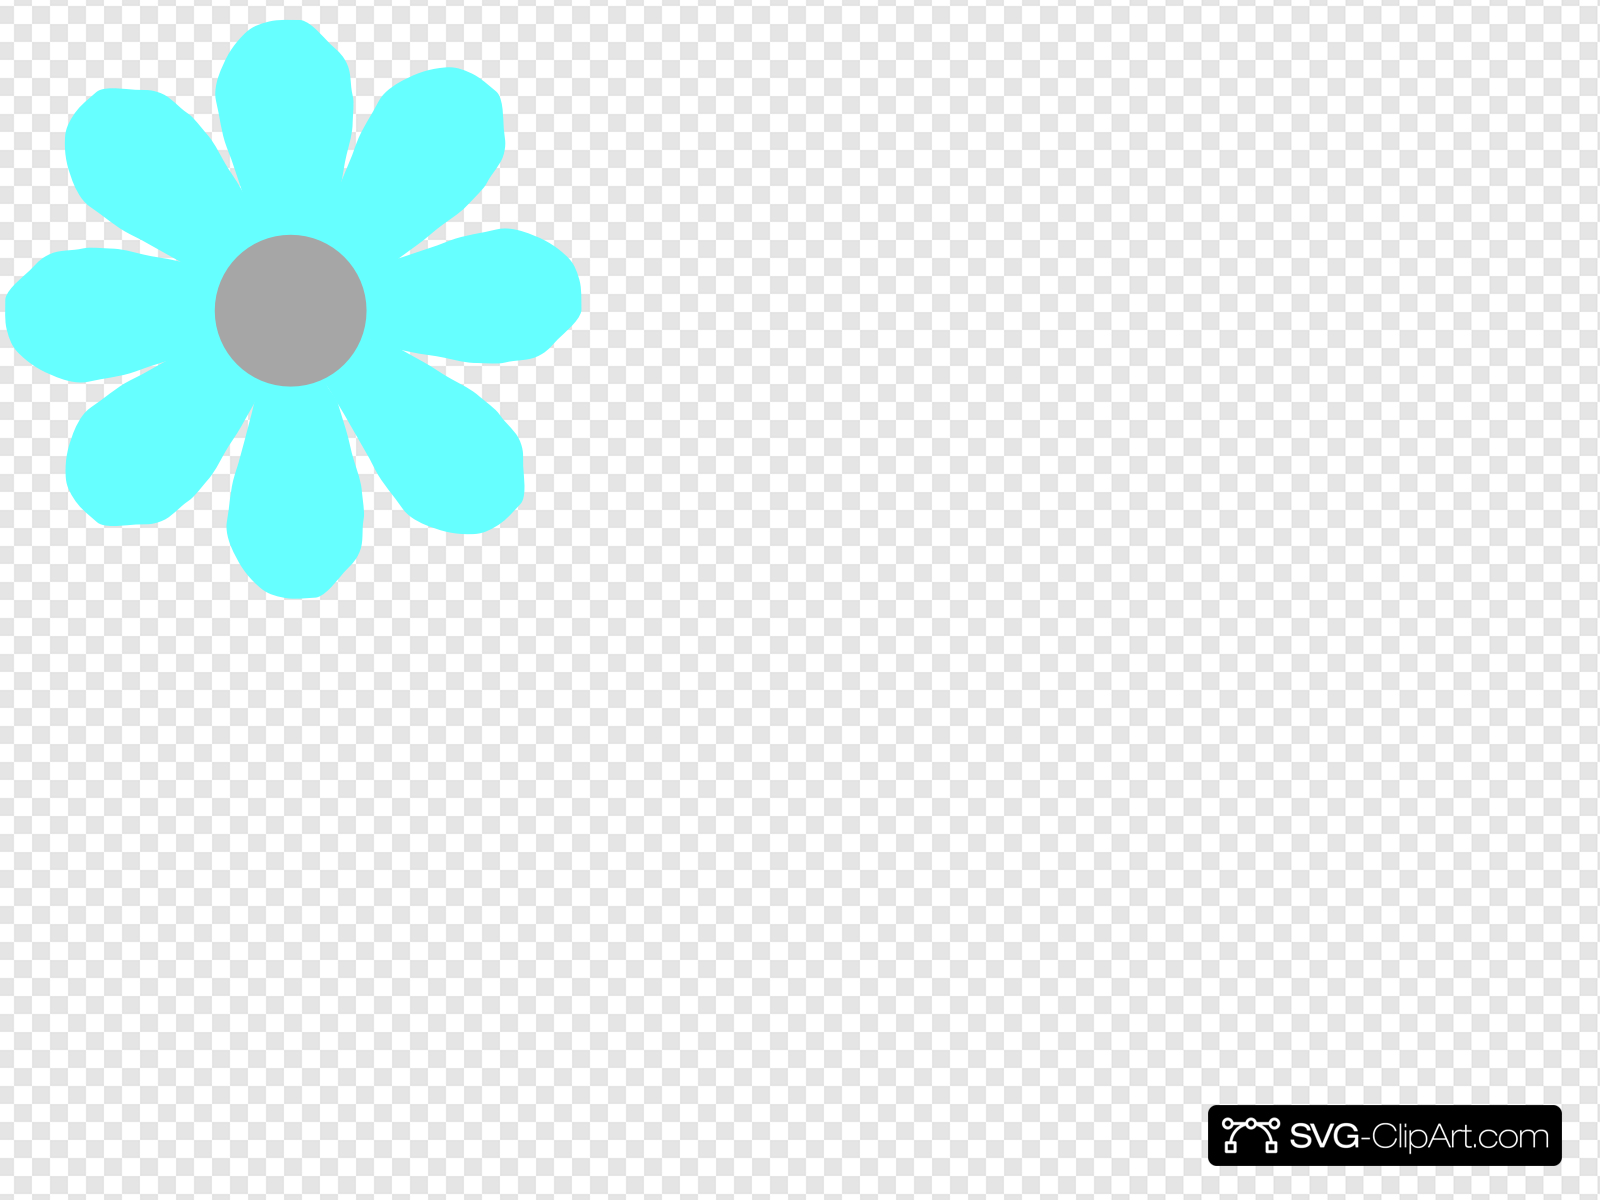 Aqua Flower Clip art, Icon and SVG.